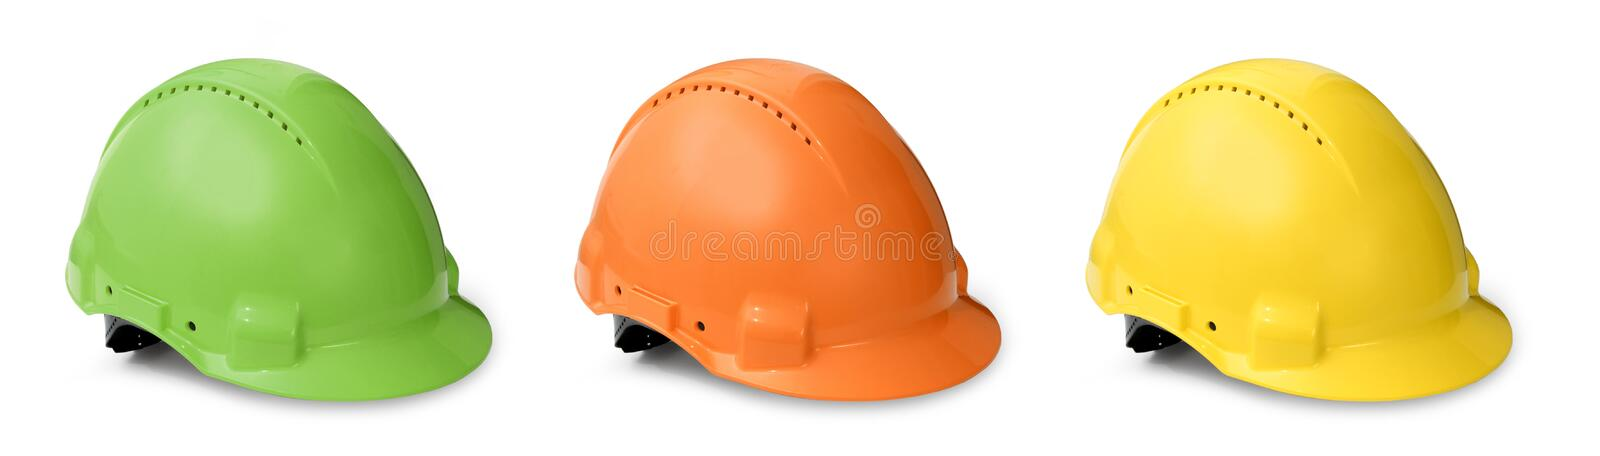 Download Hard Hat Color Collection Royalty Free Stock Photography - Image: 11968347